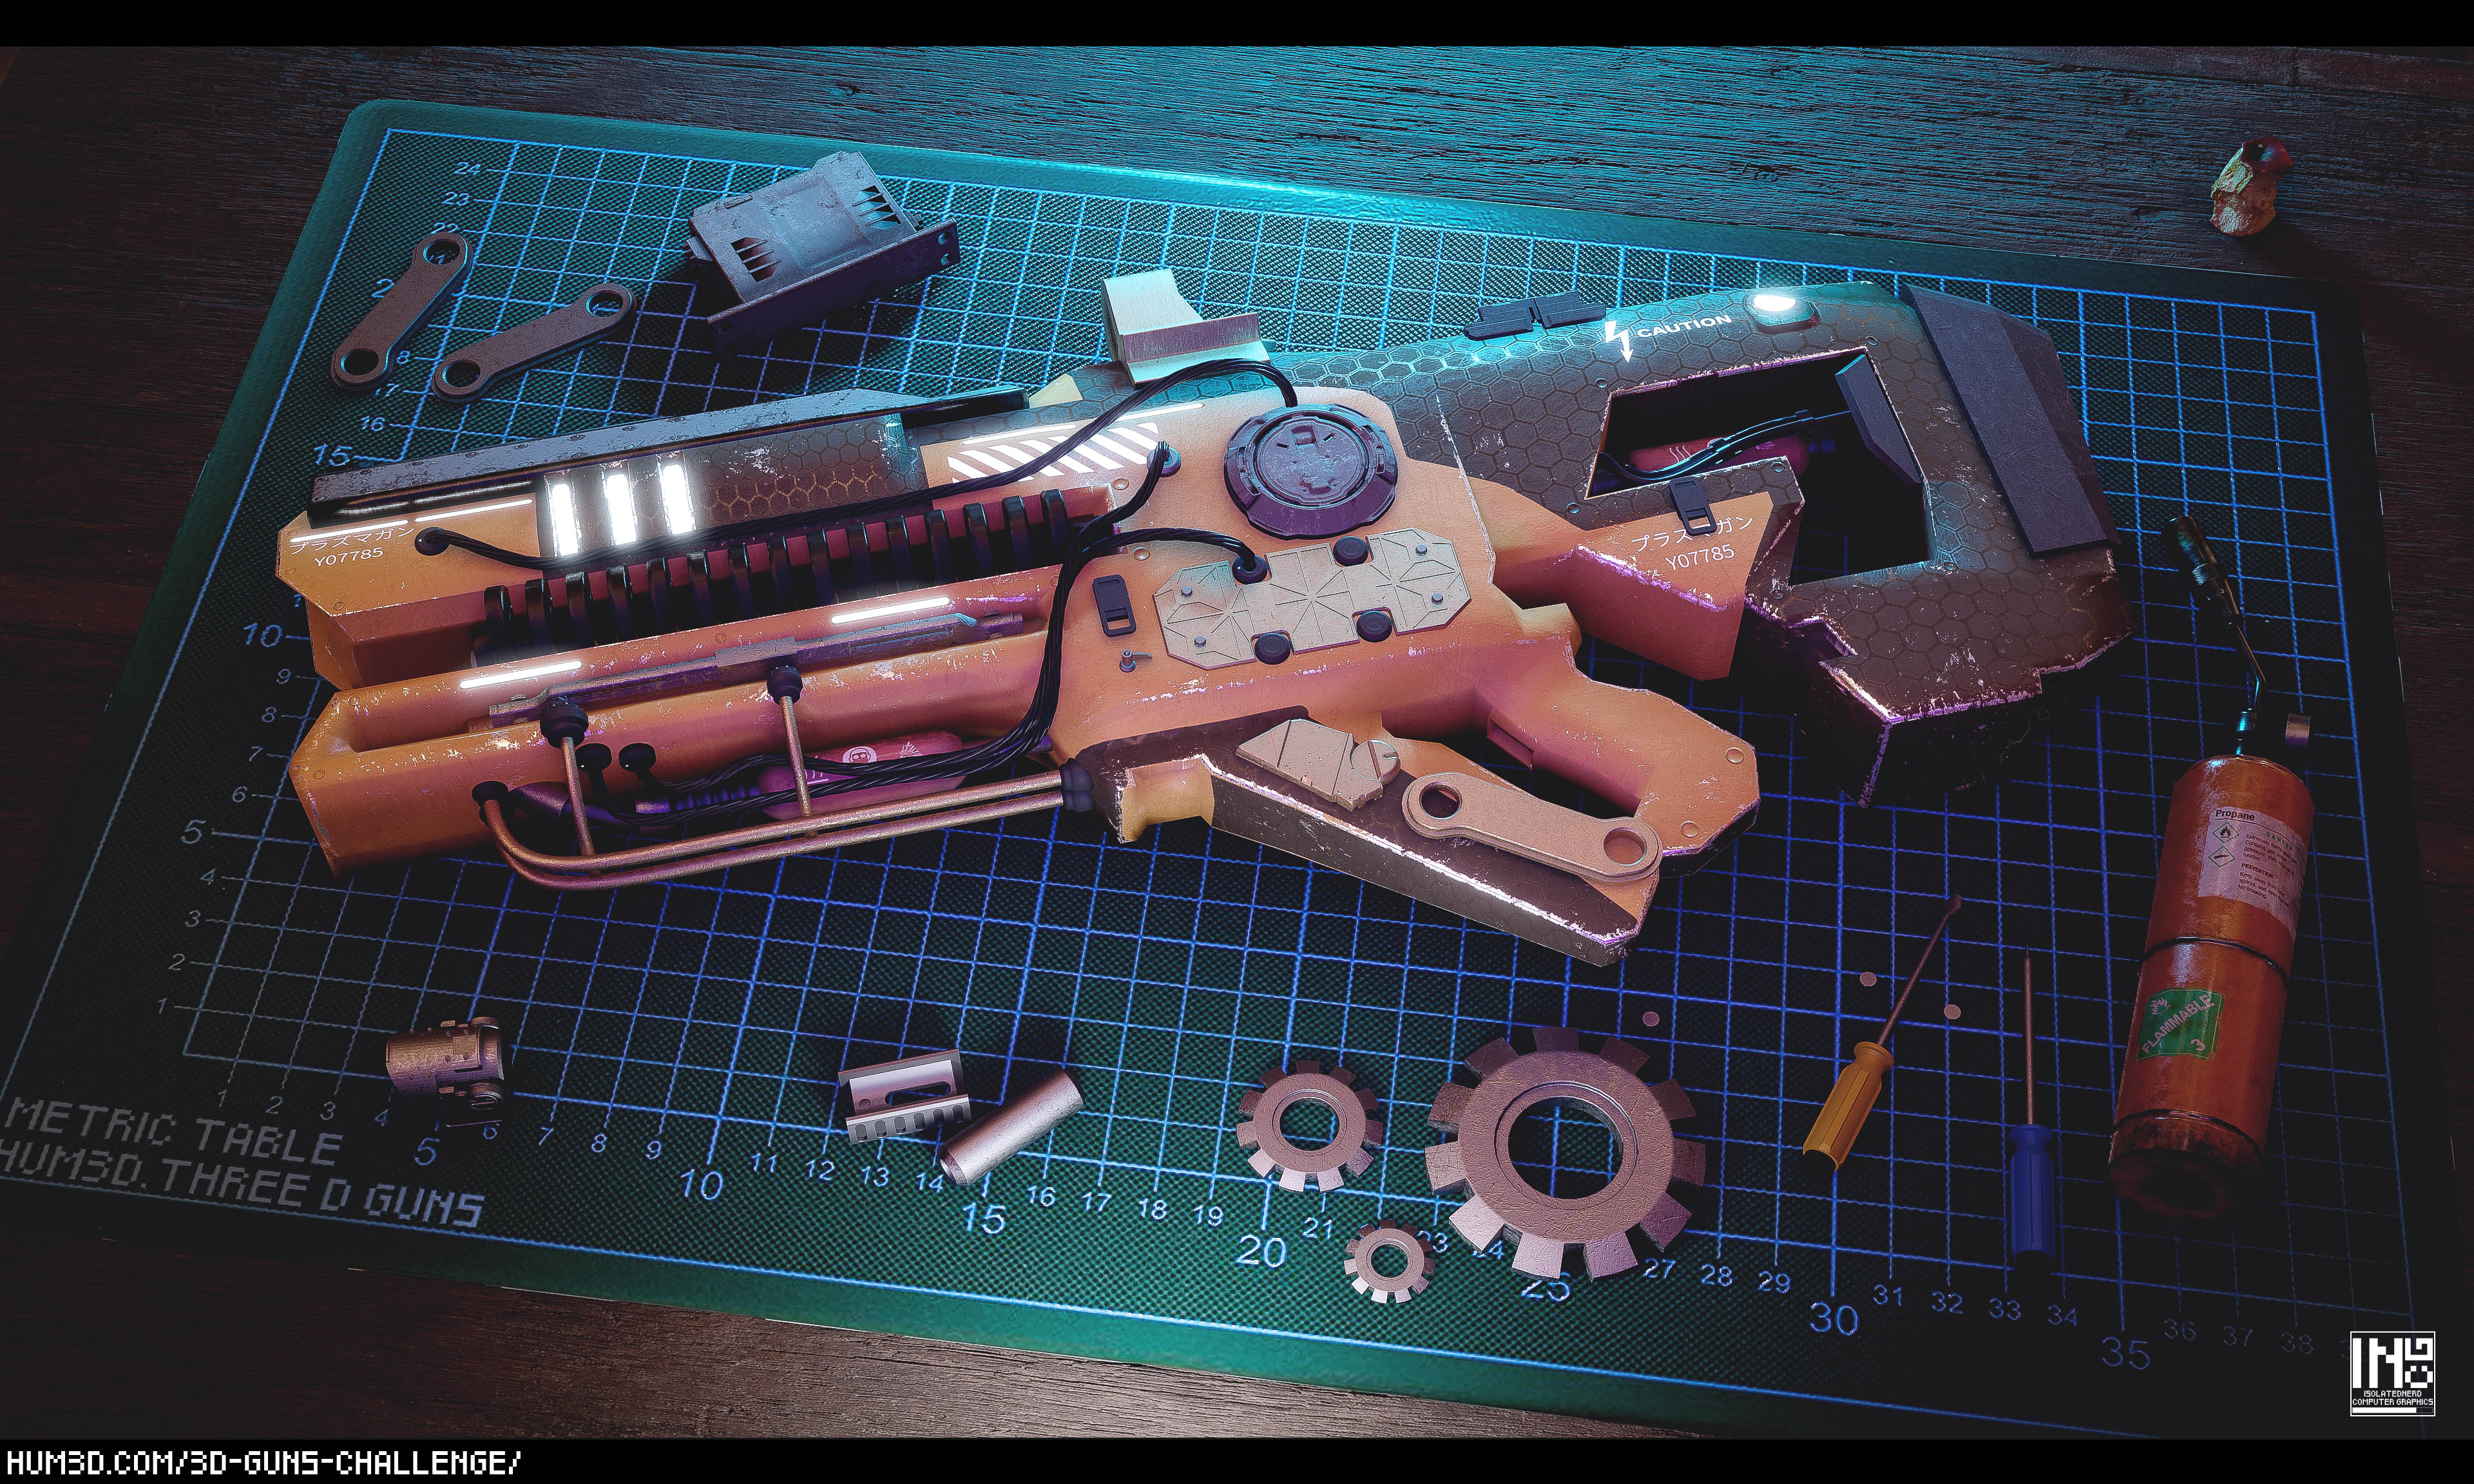 Work Bench - Customized Weapon 3d art